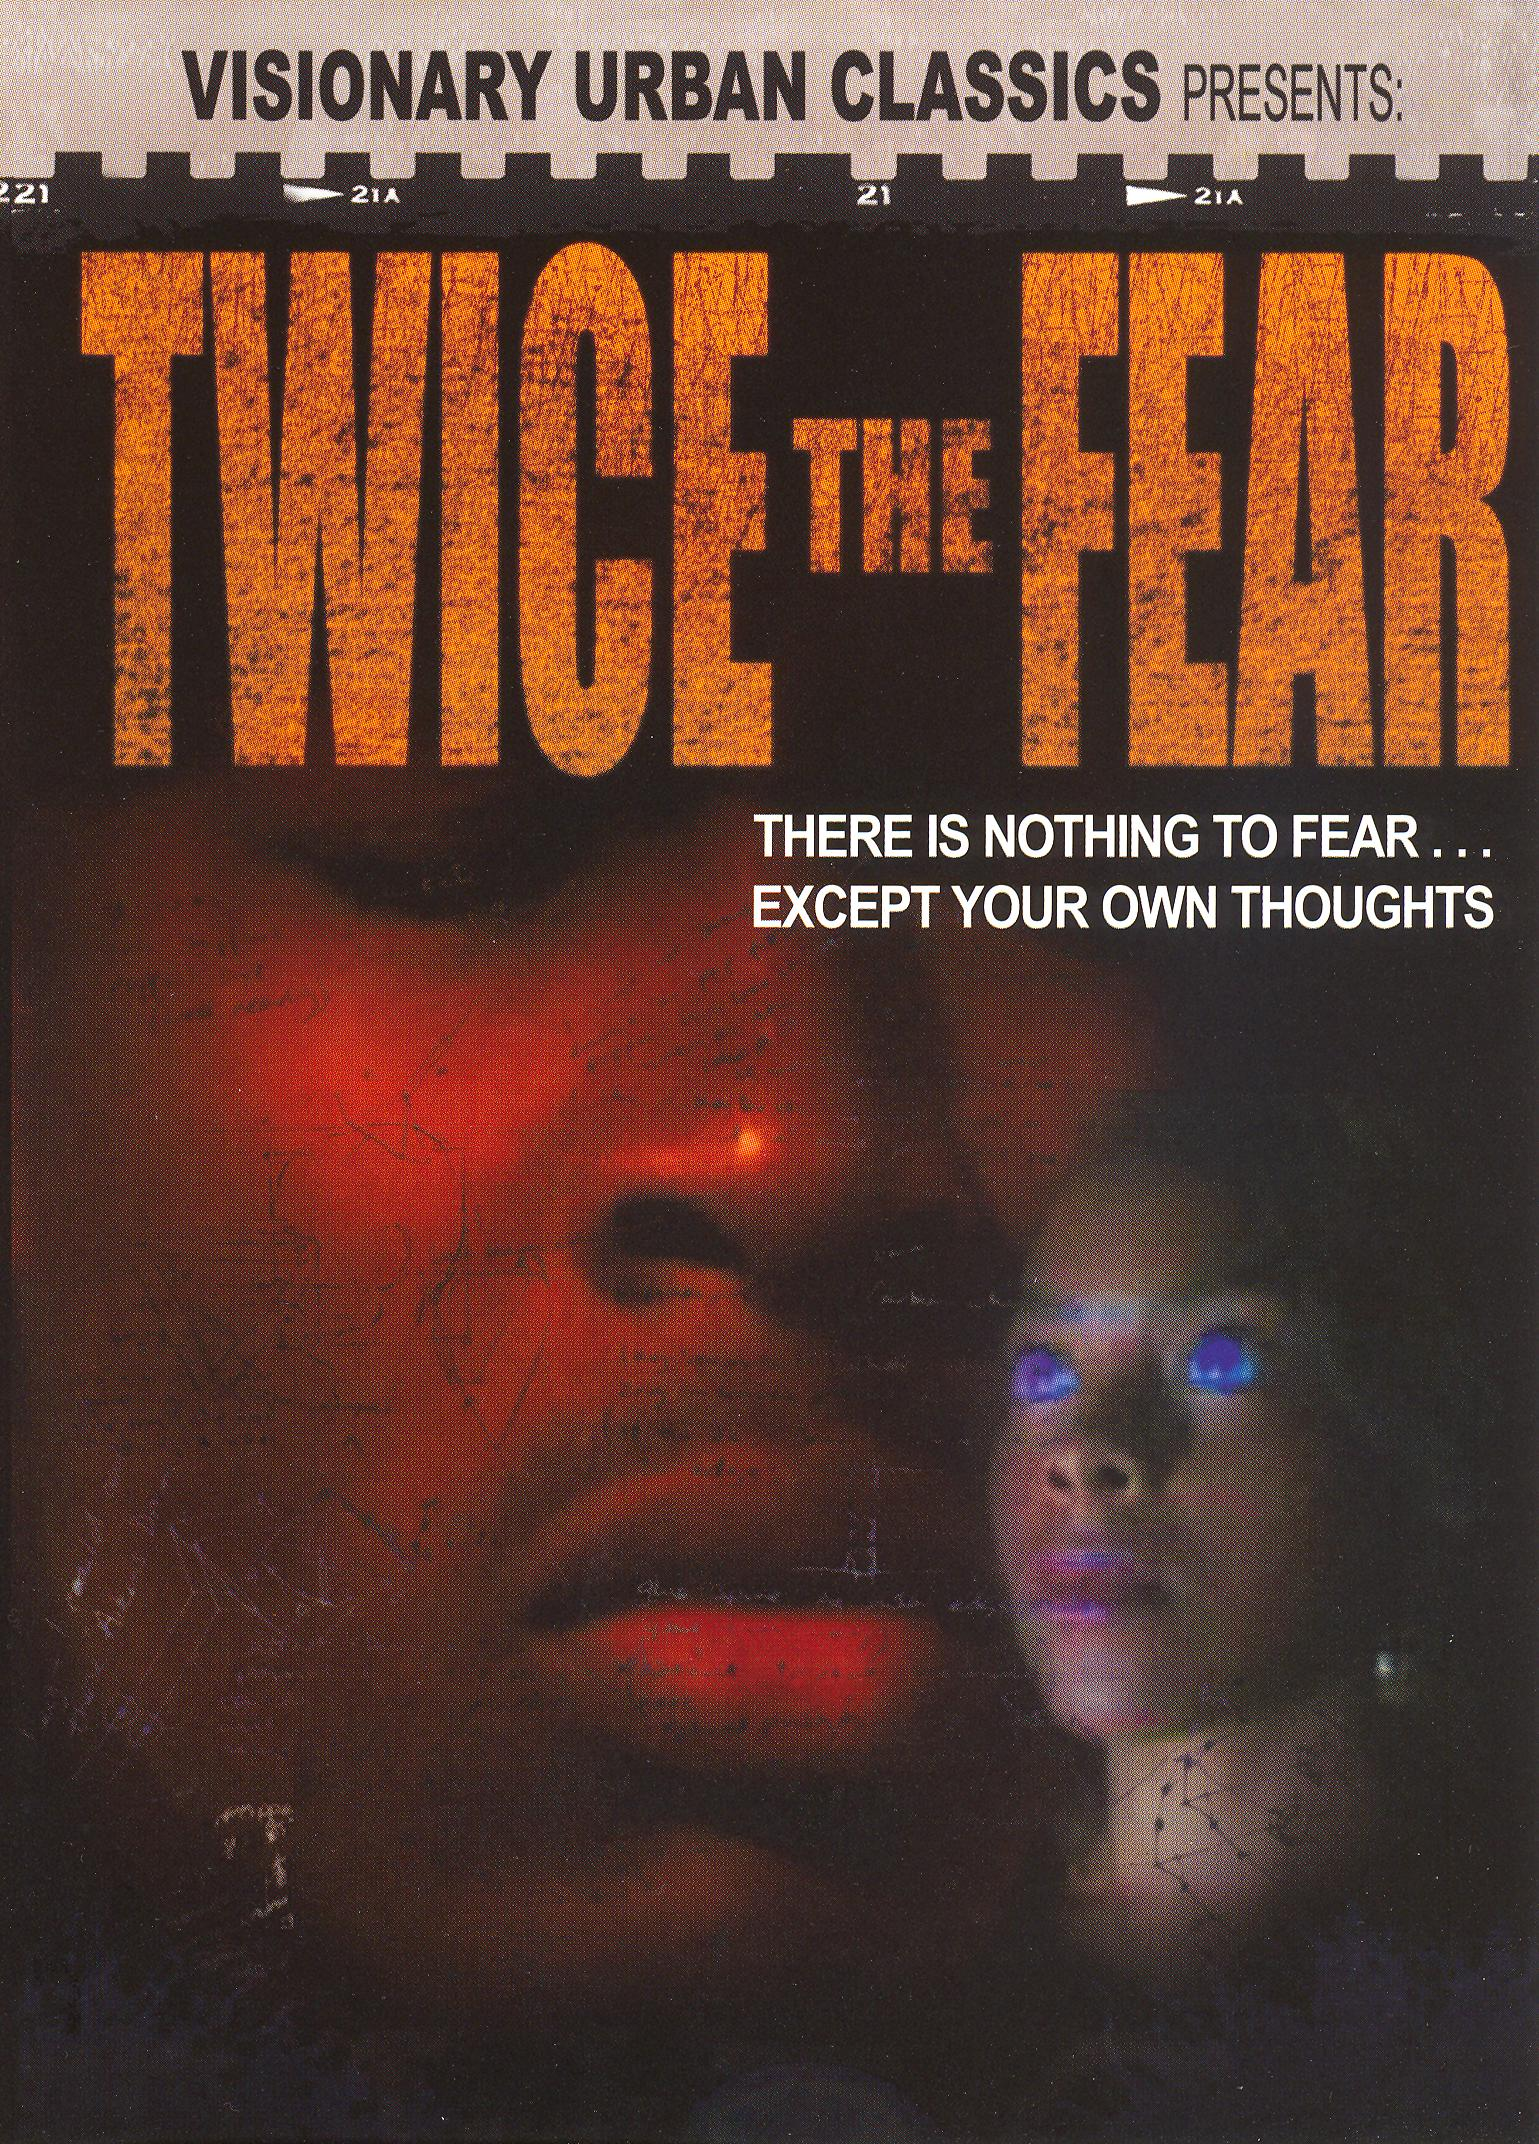 Twice the Fear, Vol. 1